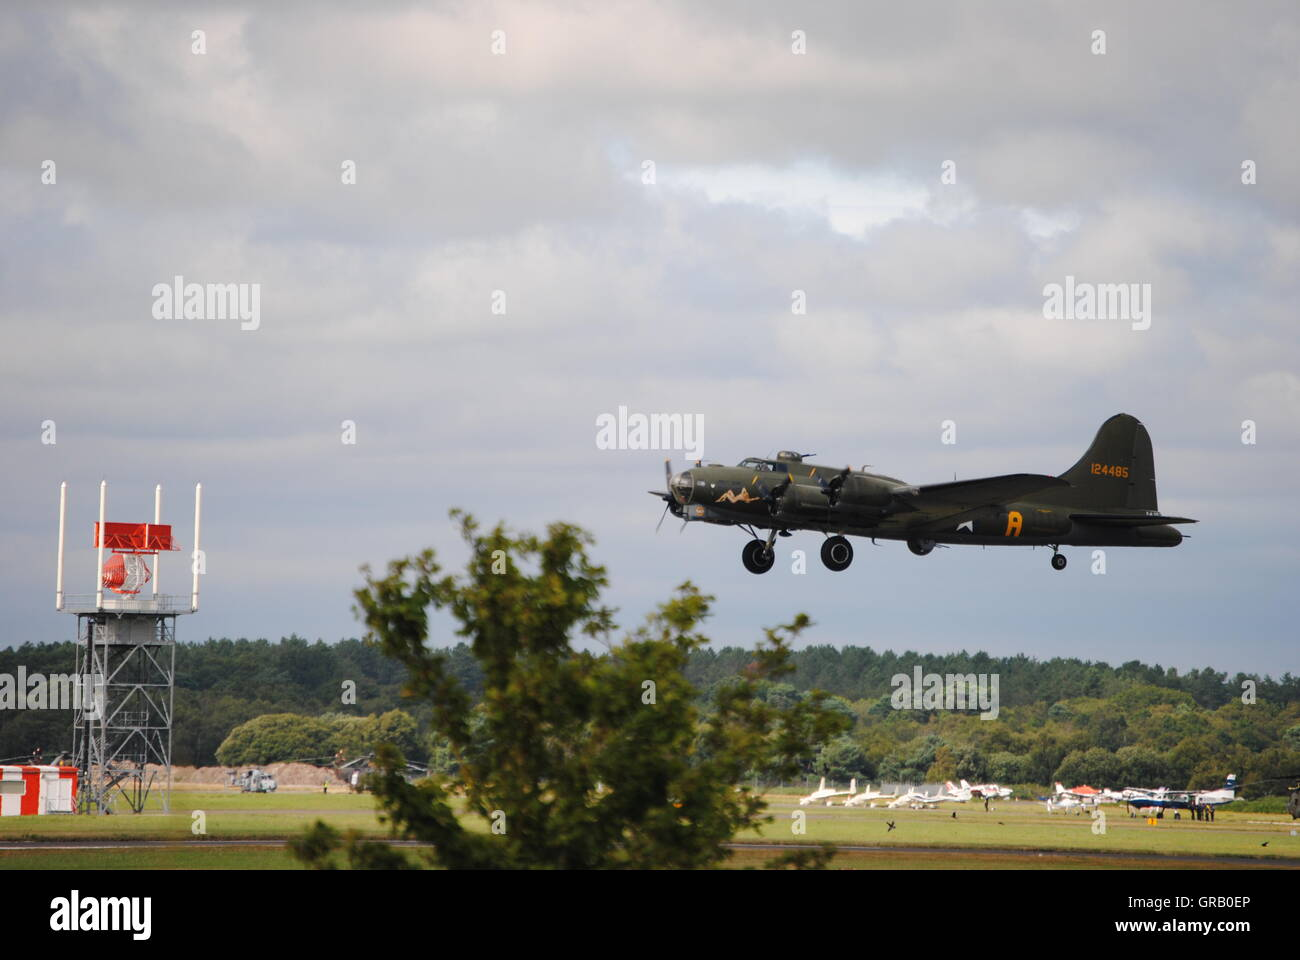 Military Airplane Flying Over Landscape Against Cloudy Sky - Stock Image